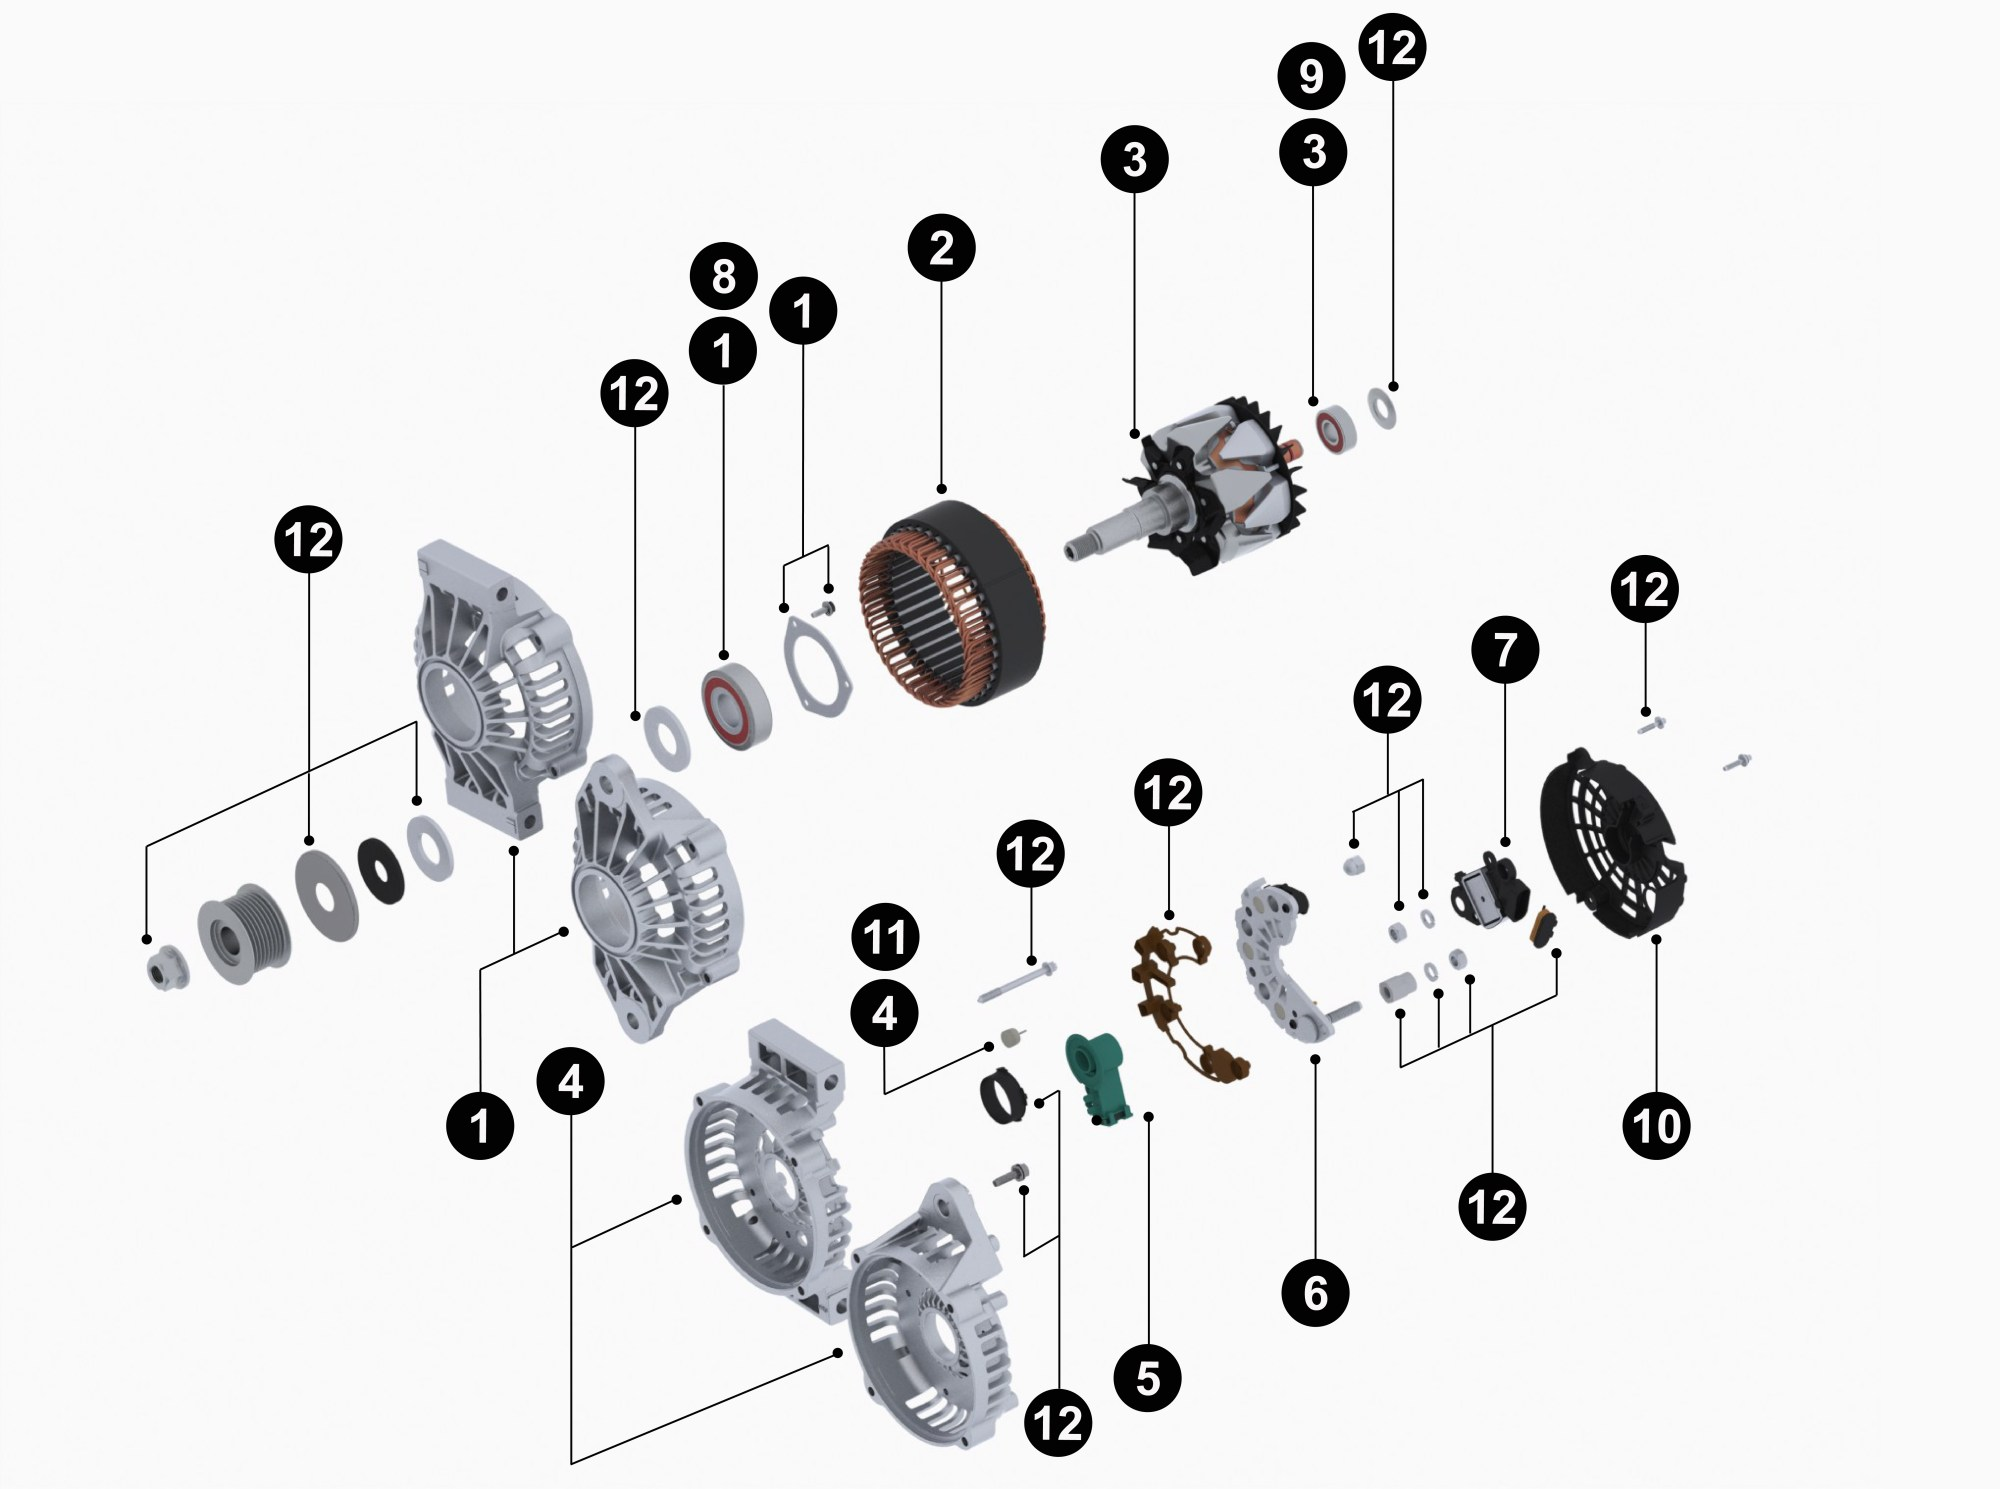 hight resolution of 8600201 28si new alternator service parts